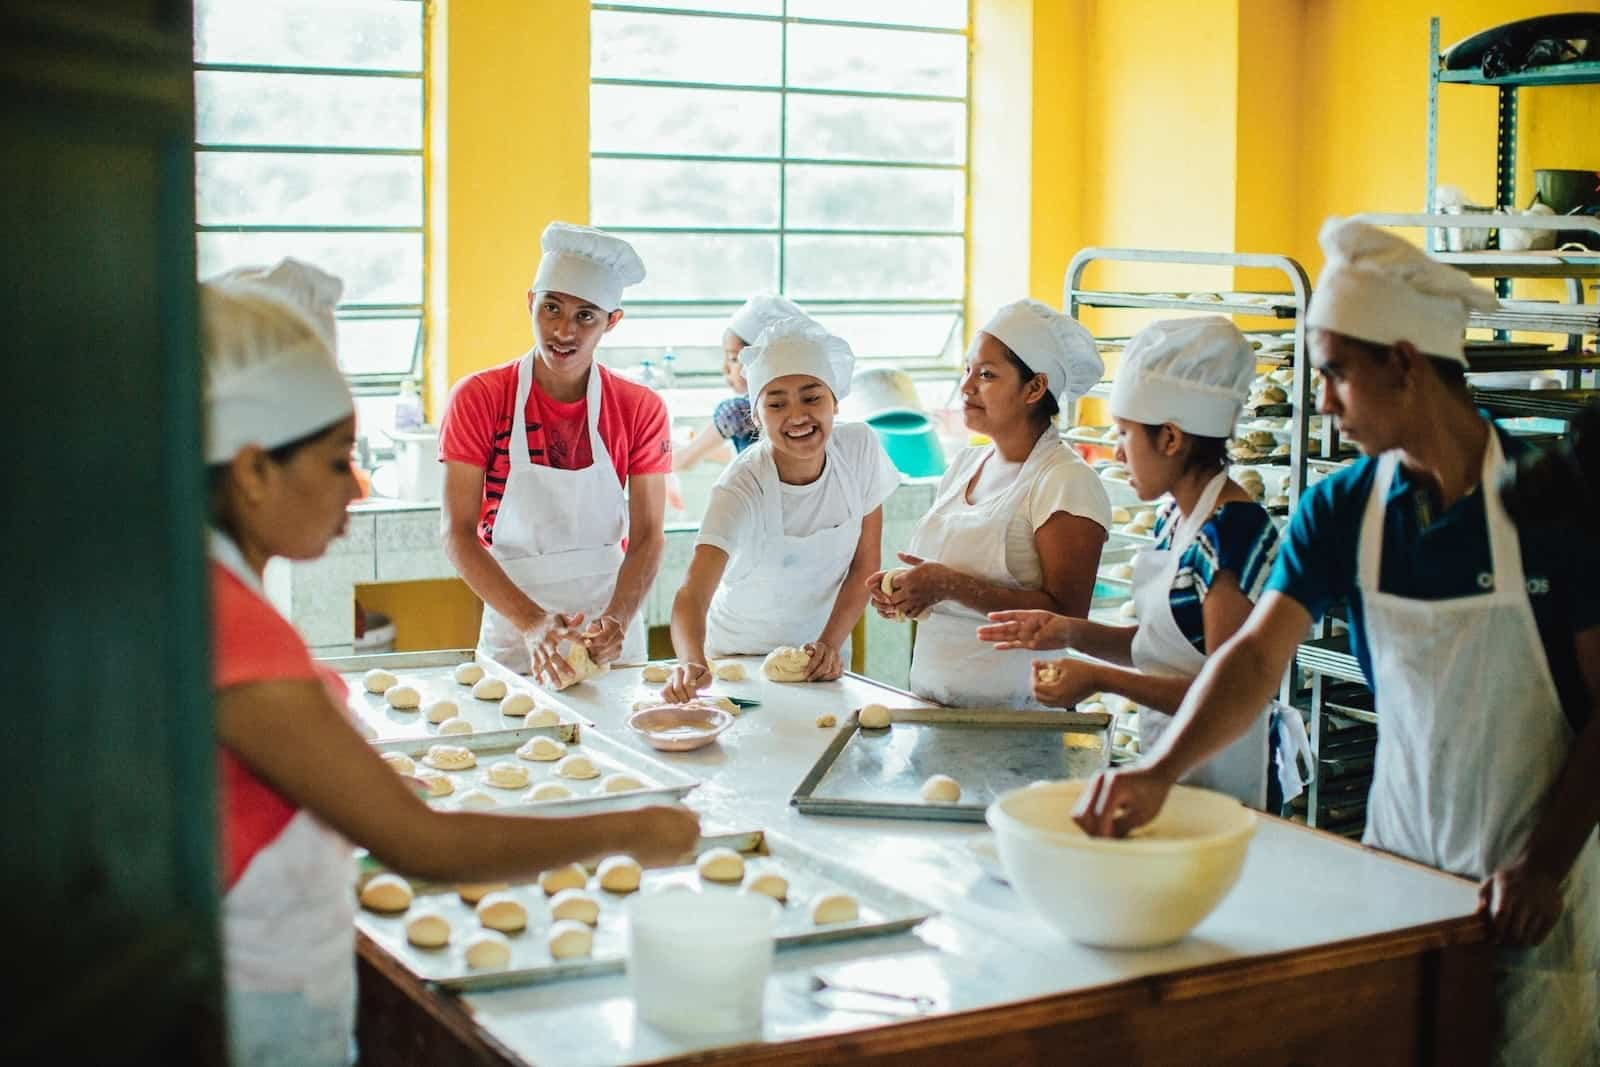 A group of students wear white aprons and chef's hats, standing around a large table, making rolls as they engage in vocational training in baking to defeat poverty.